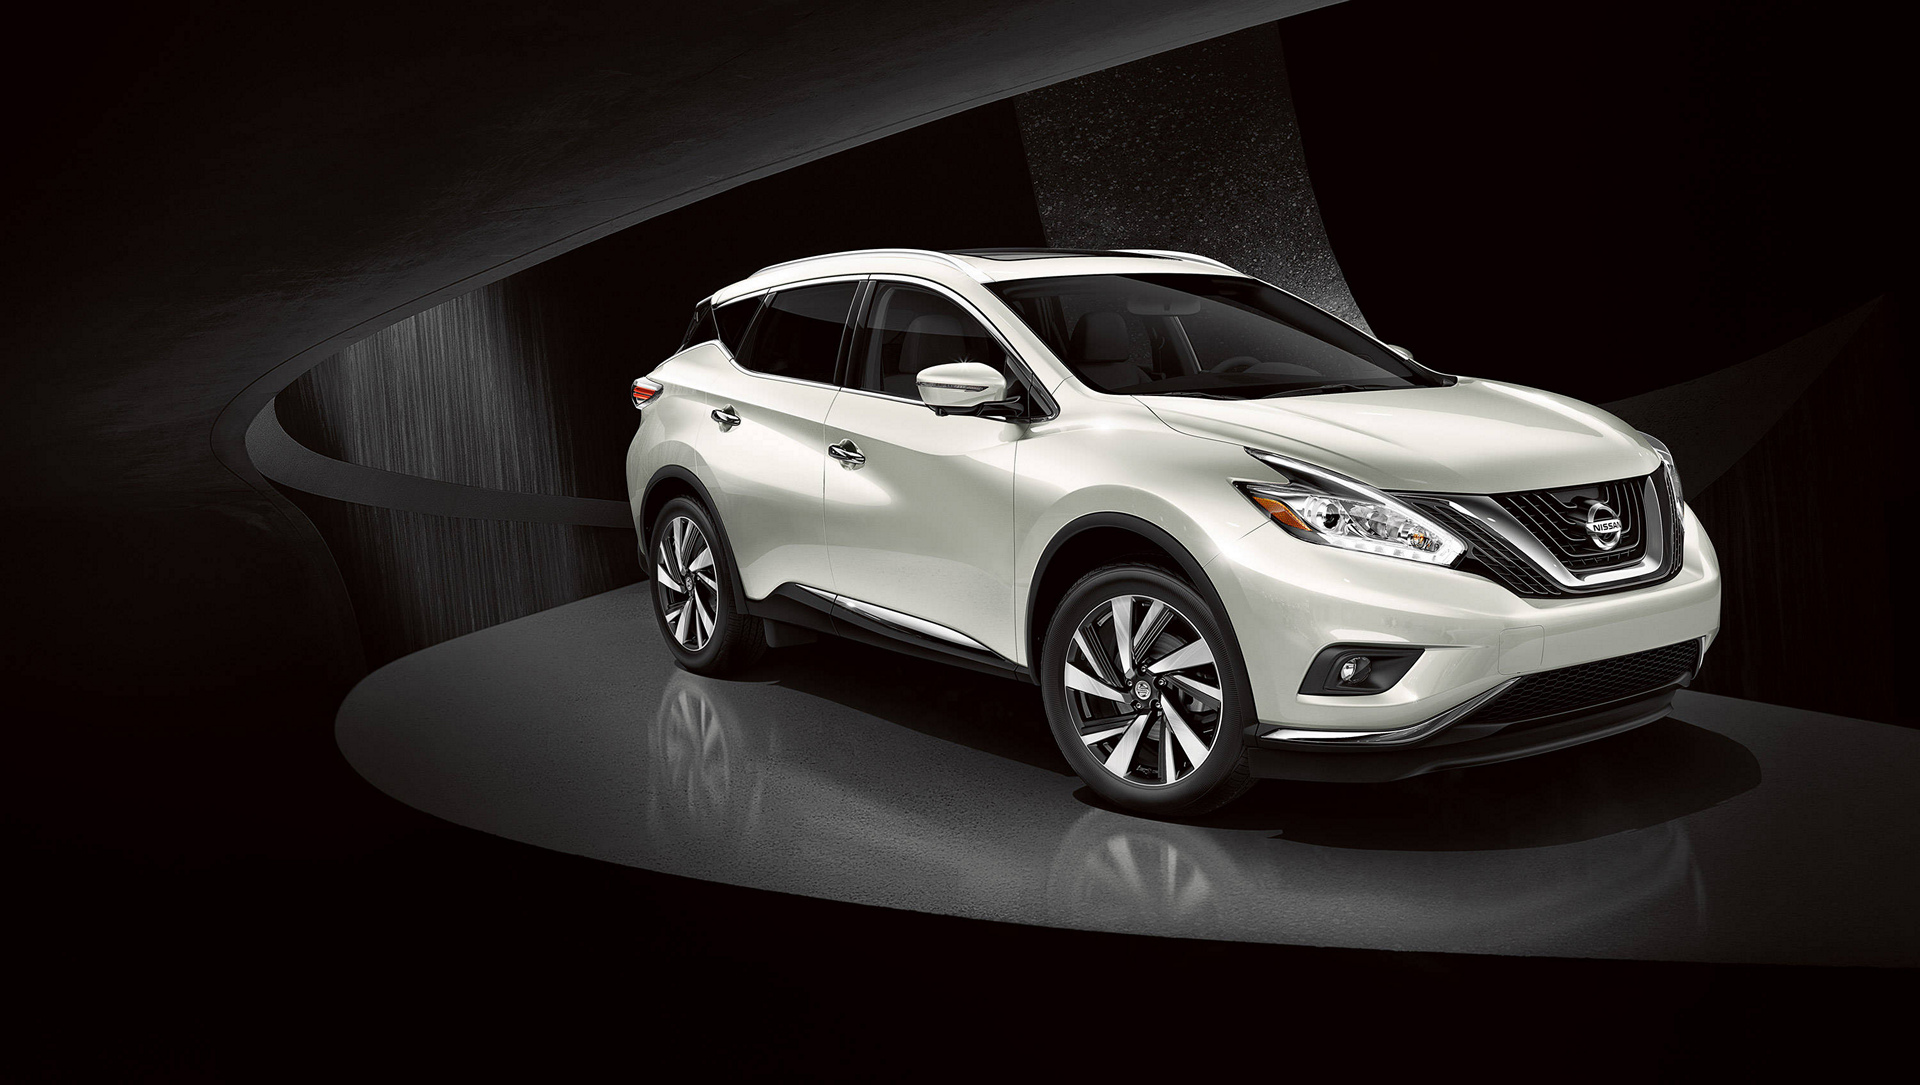 Nissan Murano © Nissan Motor Co., Ltd.